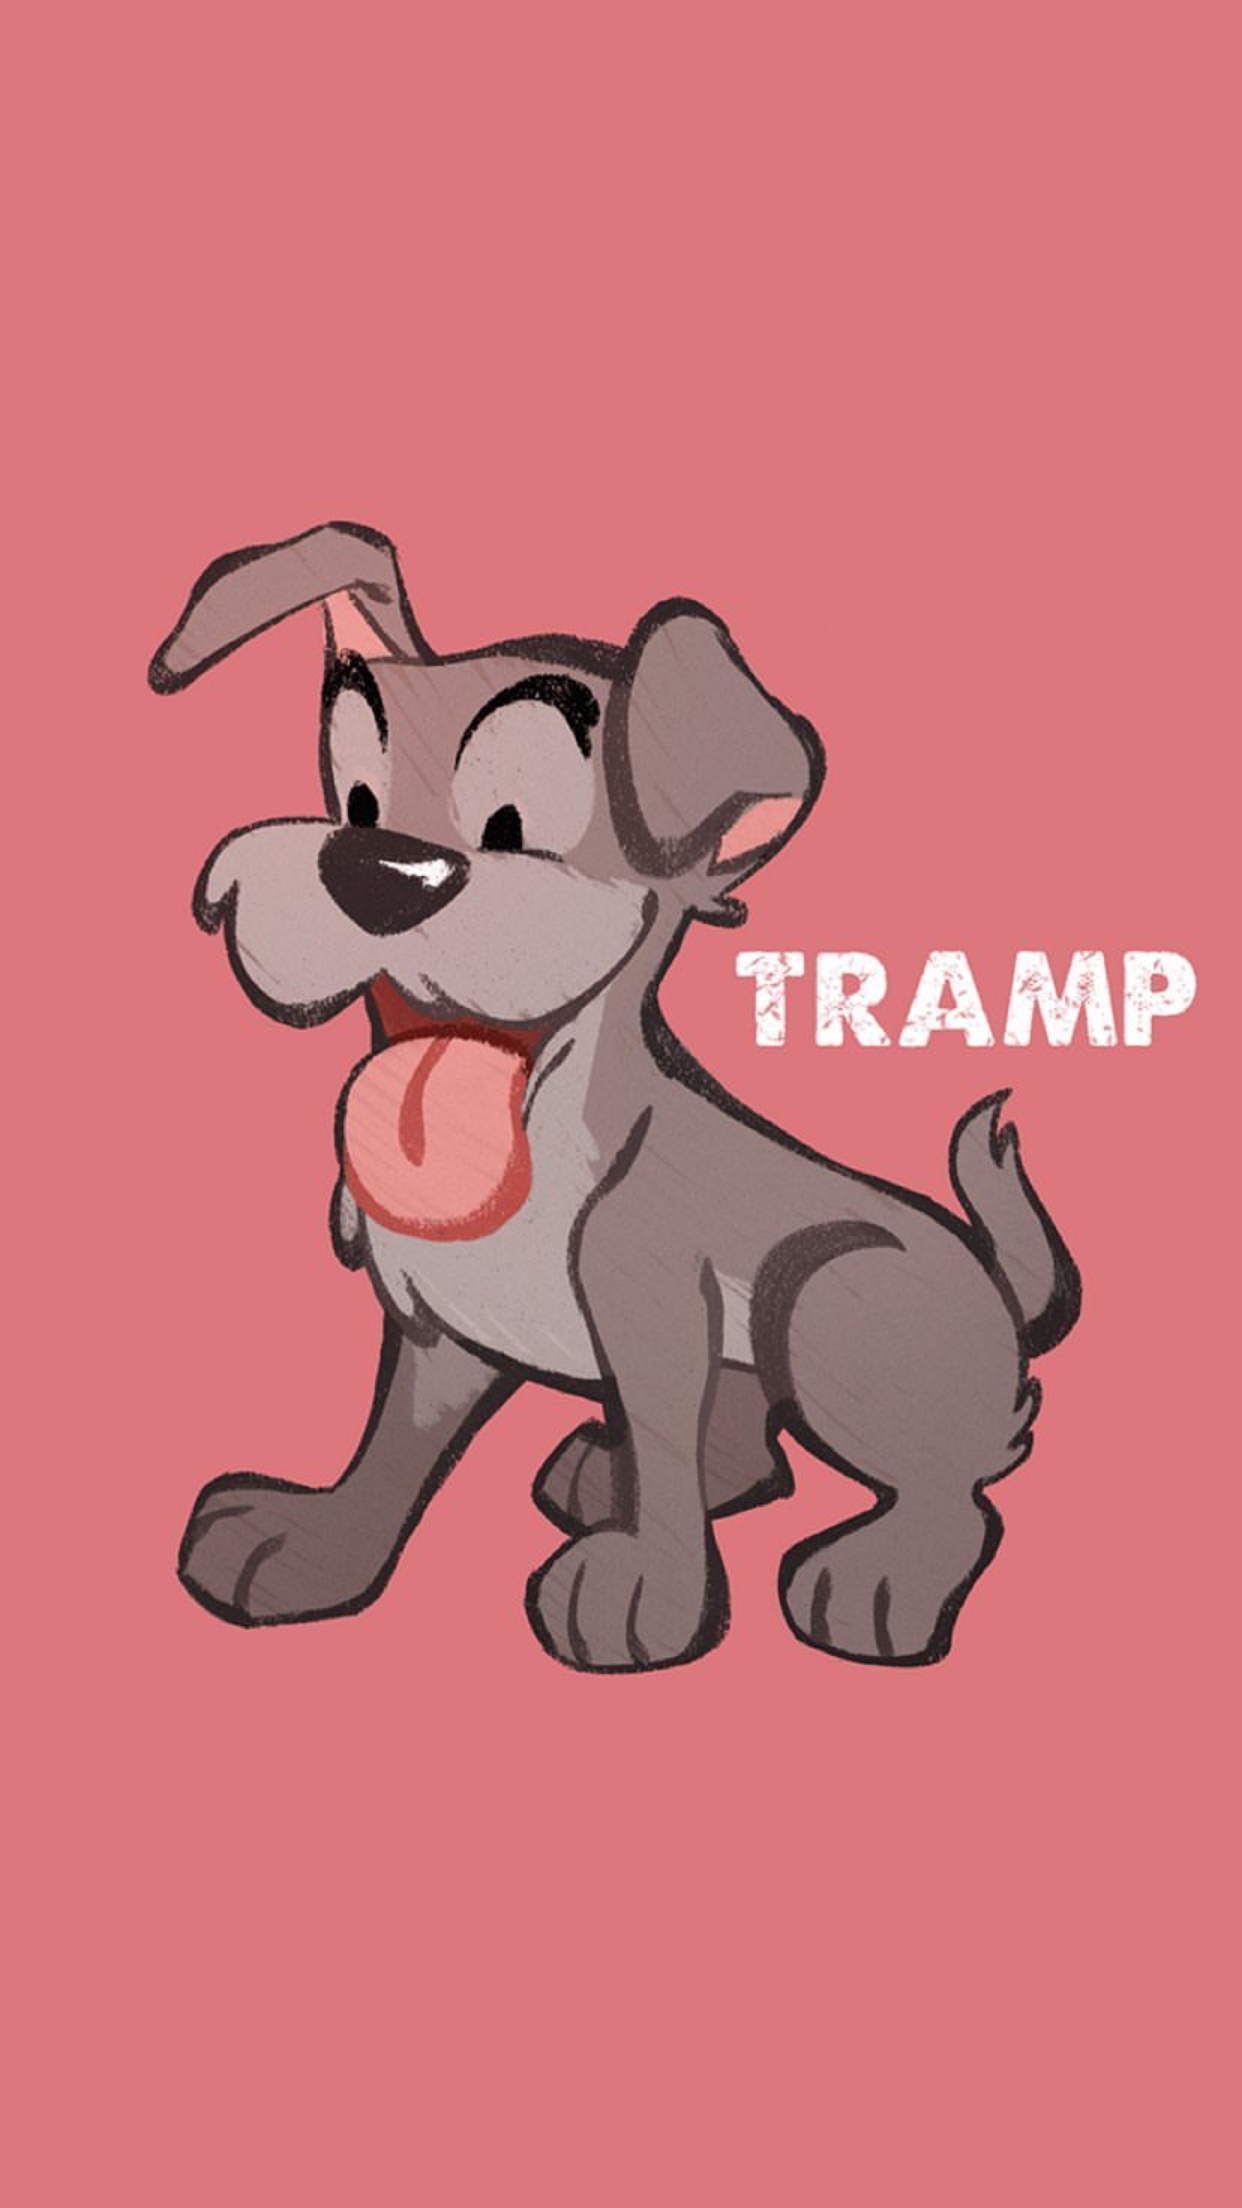 Tramp From Disney S Lady And The Tramp Dog Puppy Terrier Mix Breed Lock Screen Background Wallpaper For Android Cell Disney Friends Disney Love Disney Fun